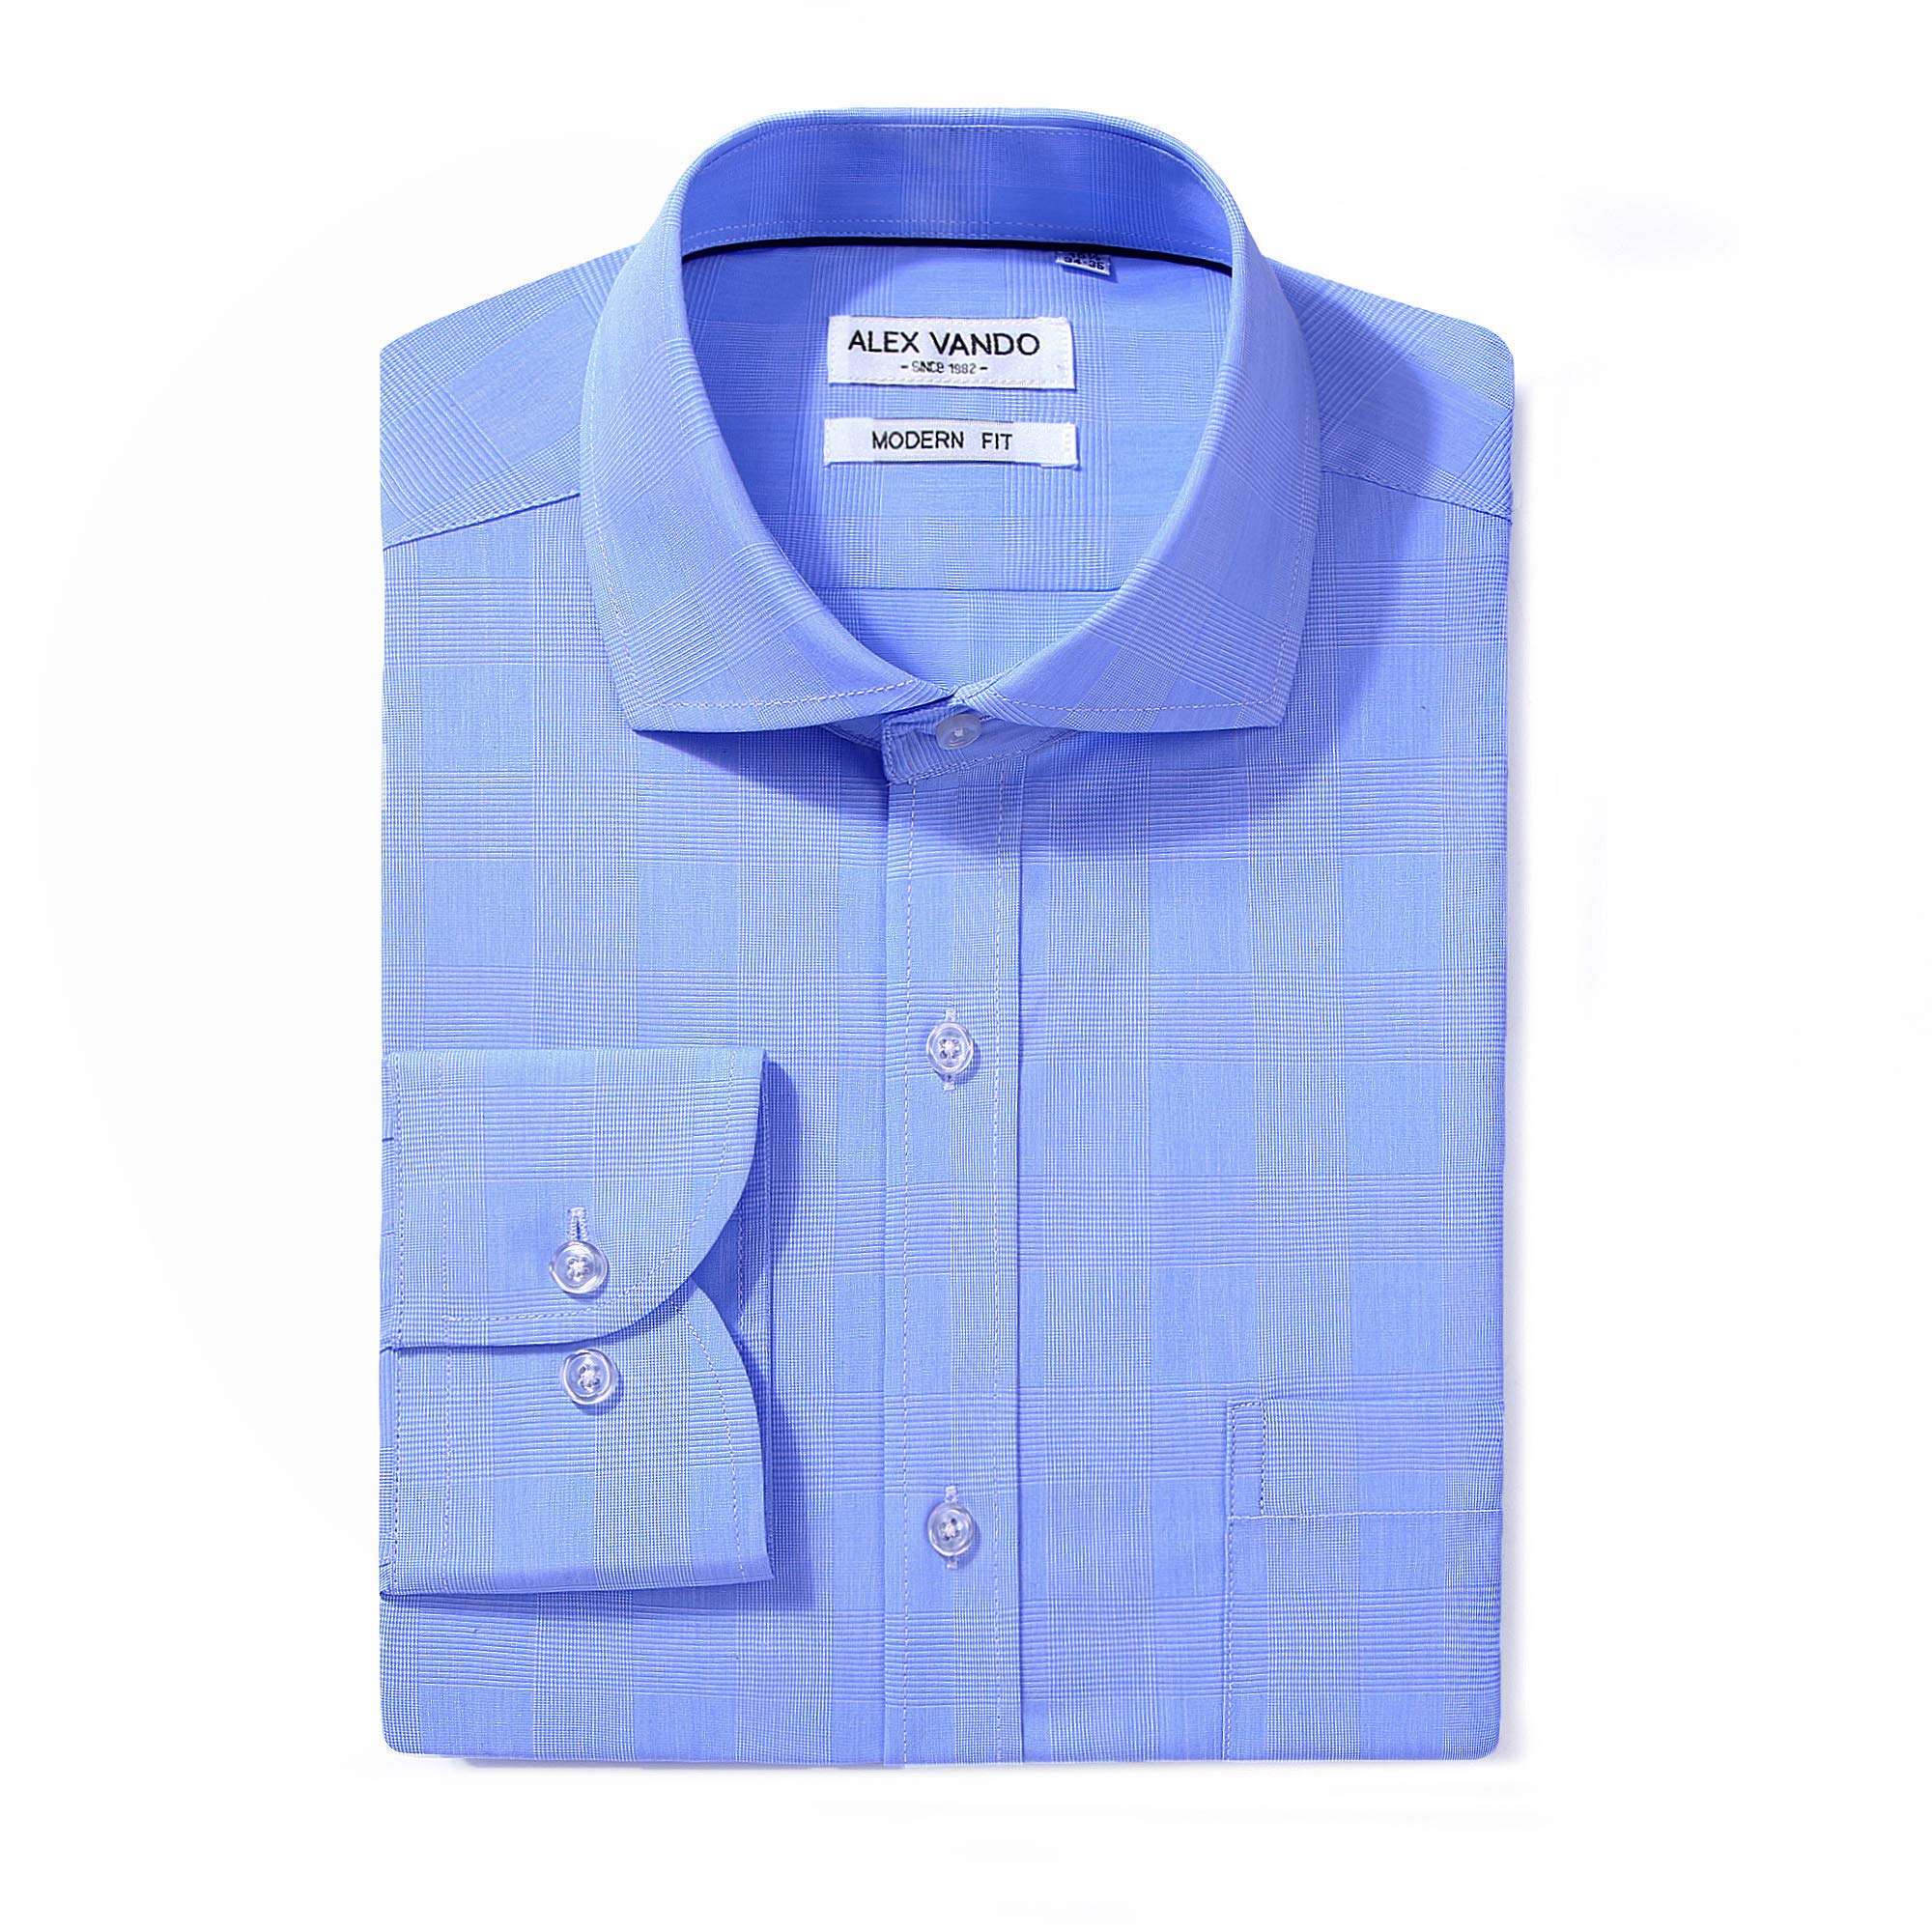 Alex Vando Men's Regular Fit Long Sleeve Dress Shirts,Blue Plaid,17 34/35